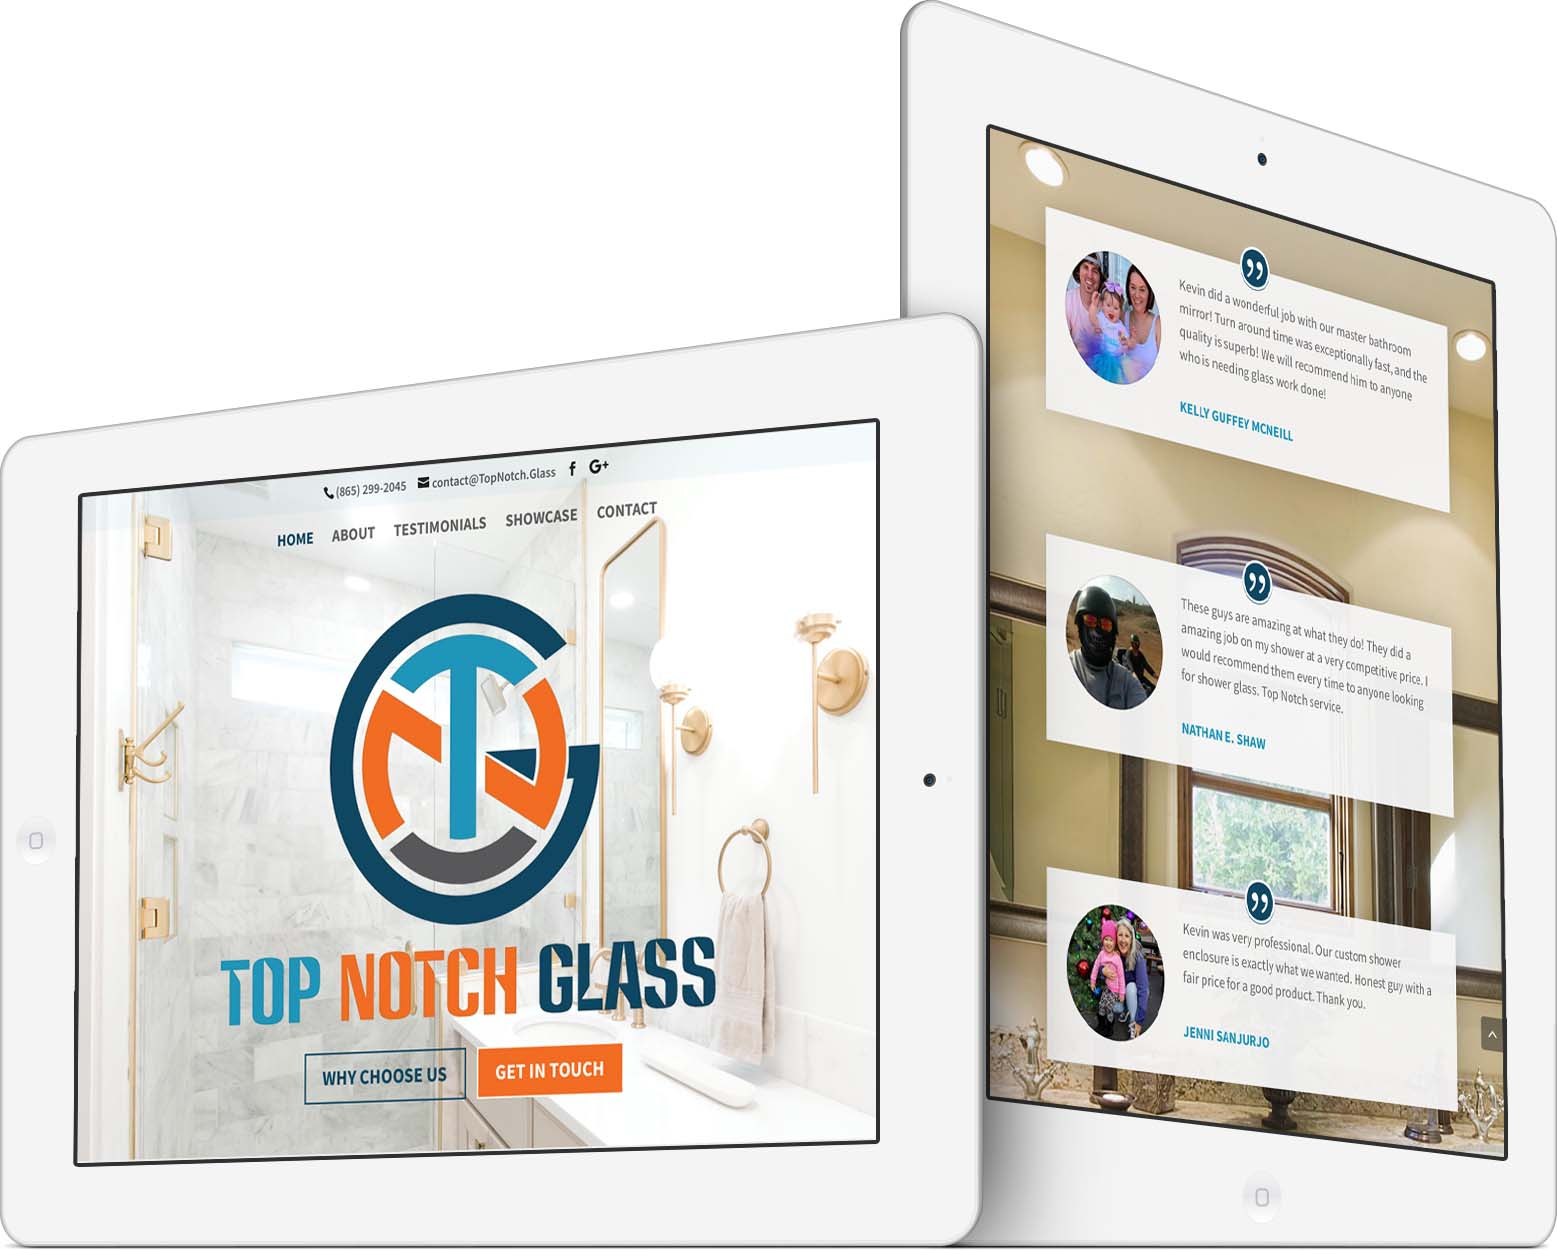 Top Notch Glass Responsive Web Design